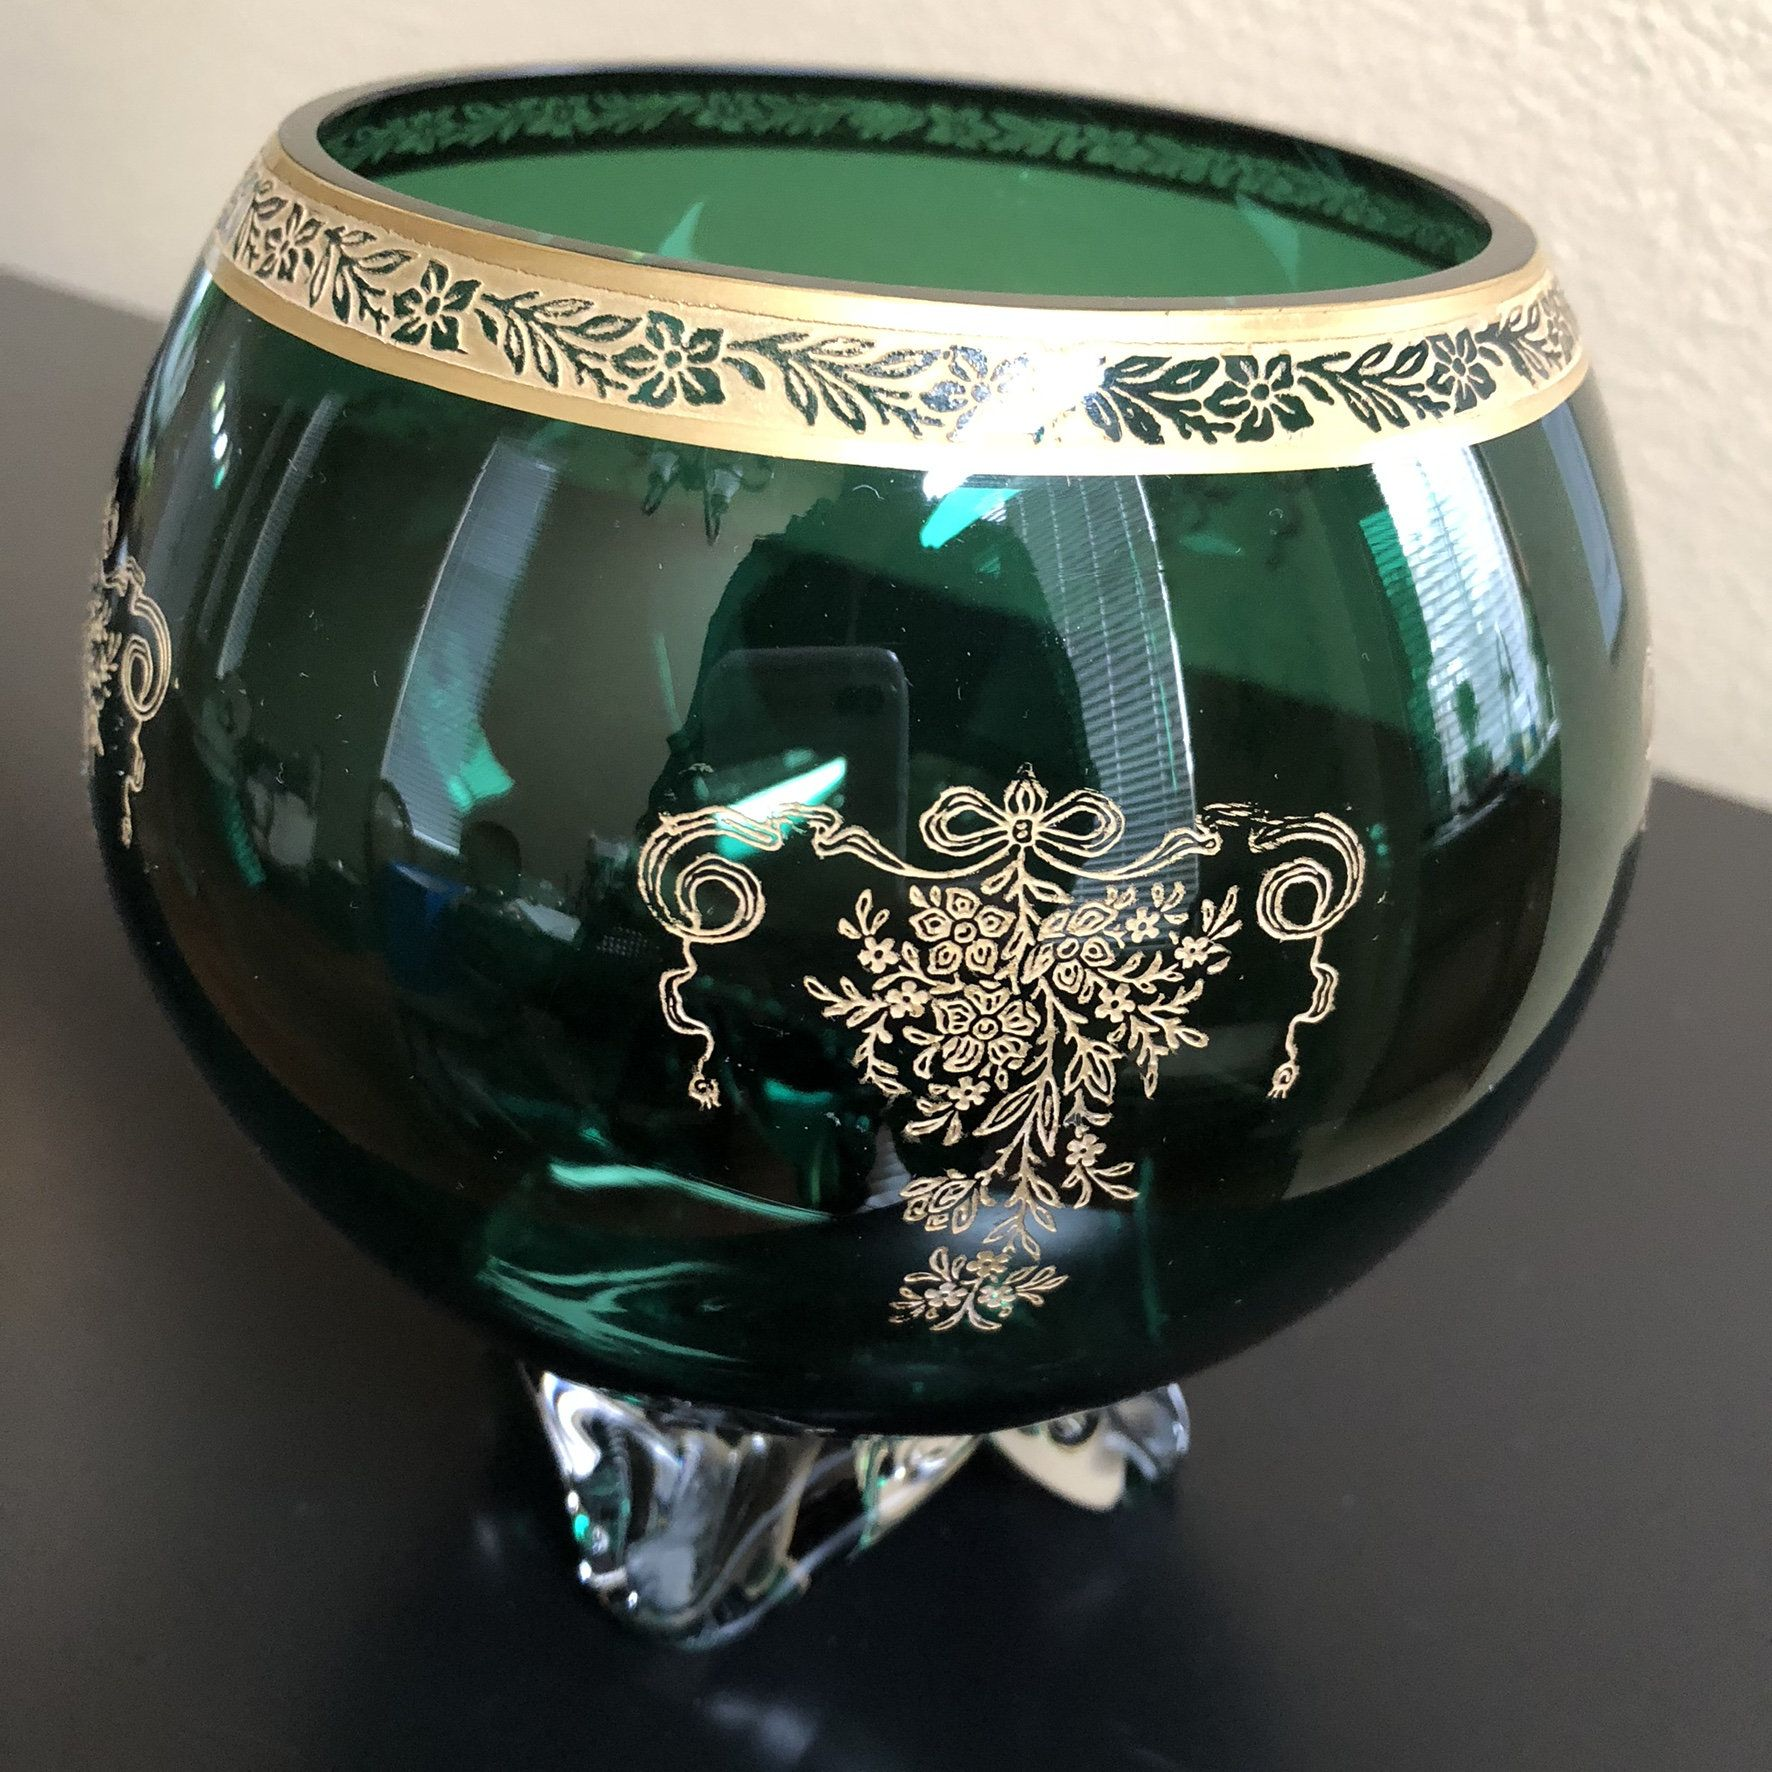 Large Decorative Green Glass Bowl With Gold Floral Design Etsy Green Glass Bowls Glass Bowl Centerpiece Bowl Large glass decorative bowl